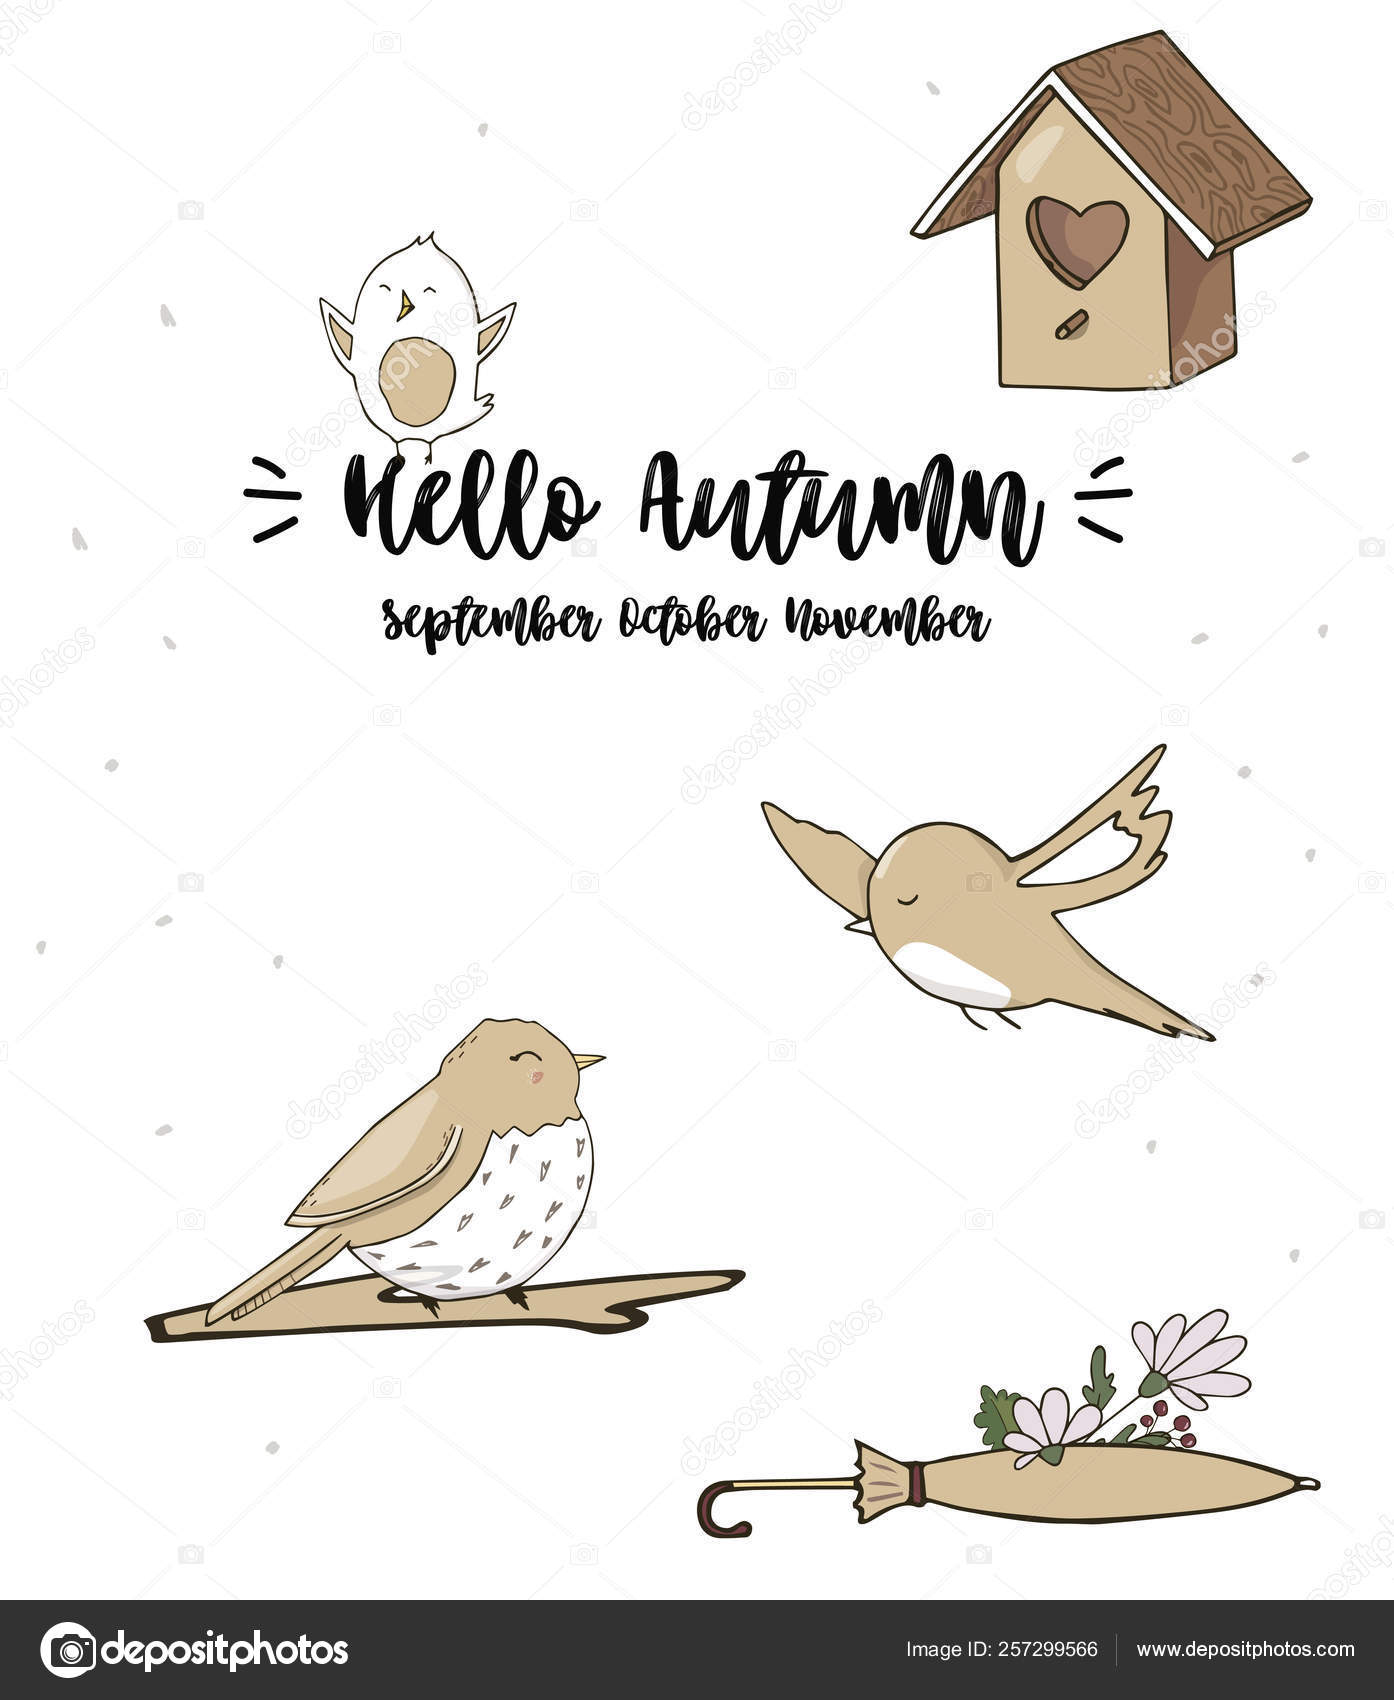 Sparrows Vector Songbird Illustration Singer Drawing